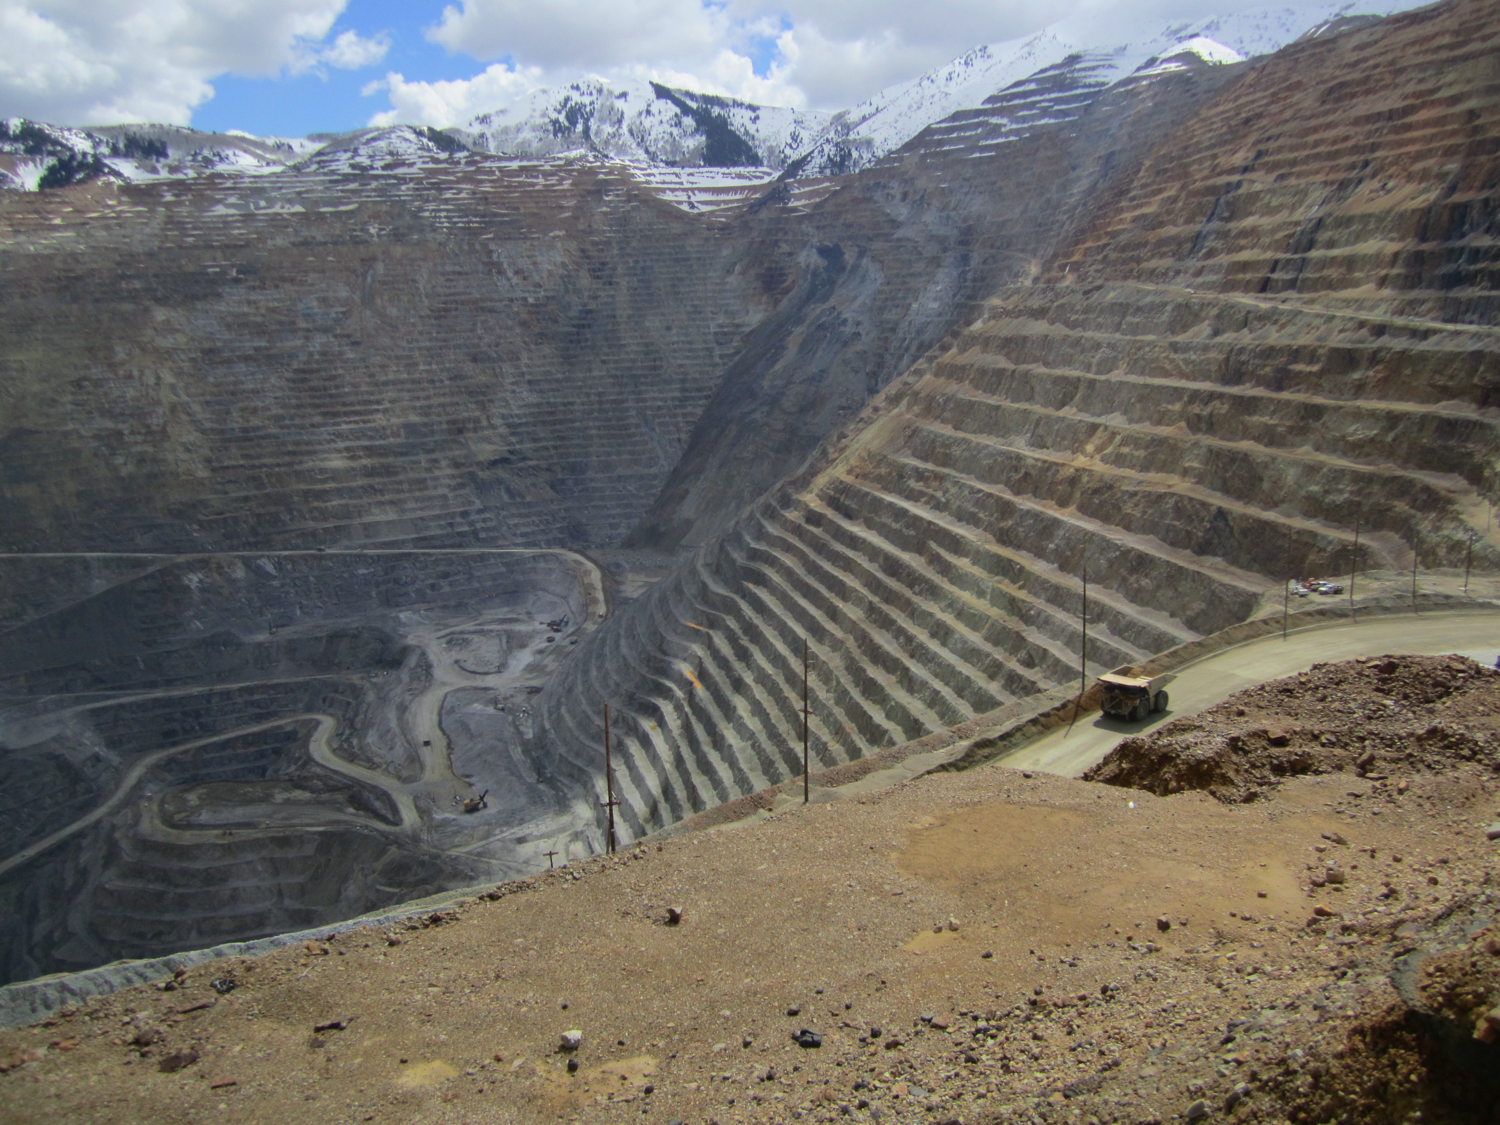 Rio Tinto (formerly Kennecott) copper mine near Salt Lake City, Utah